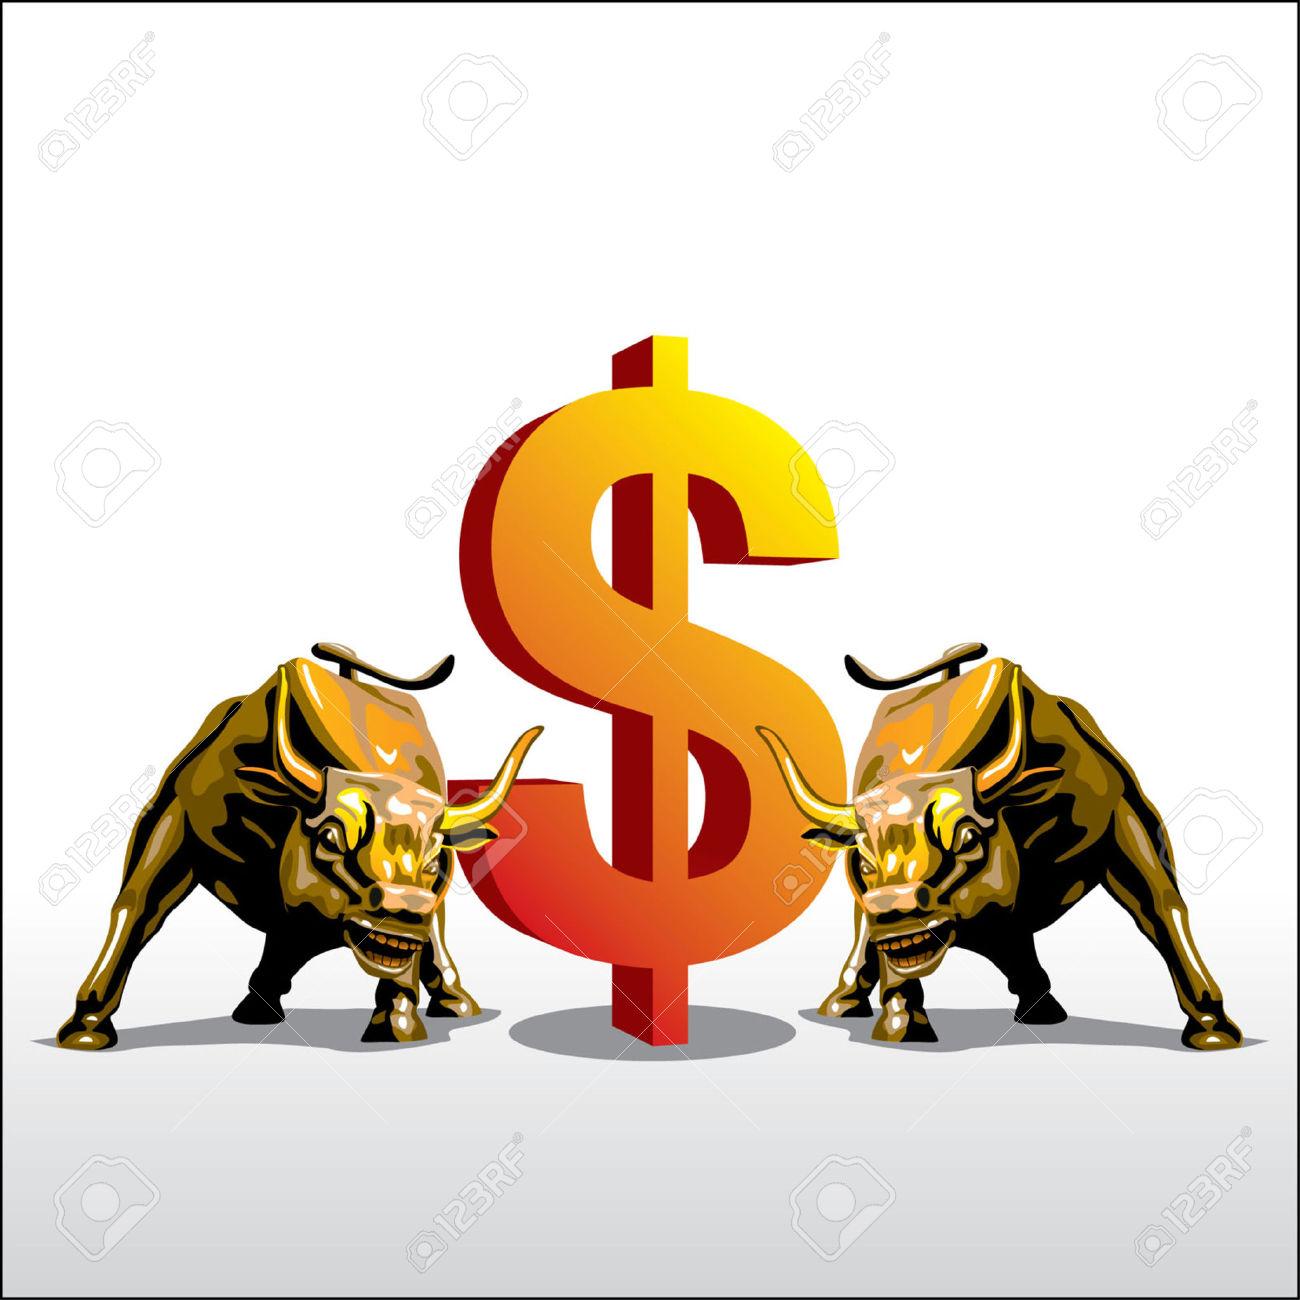 Bull Fight For Money Royalty Free Cliparts, Vectors, And Stock.